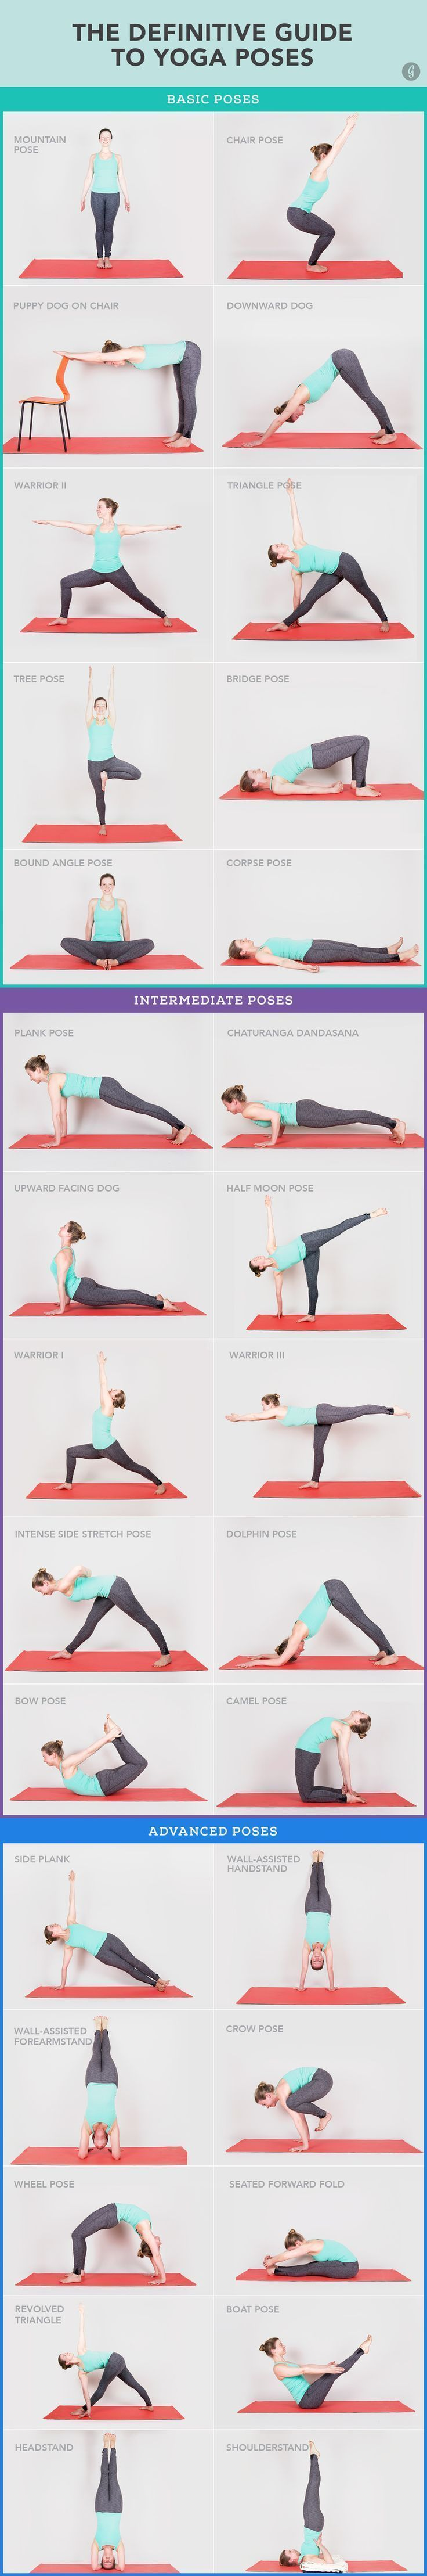 30 Yoga Poses You Really Need To Know  Namaste! We have everything you need to know about the most important yoga poses. #yoga #workout #poses #fitness #greatist